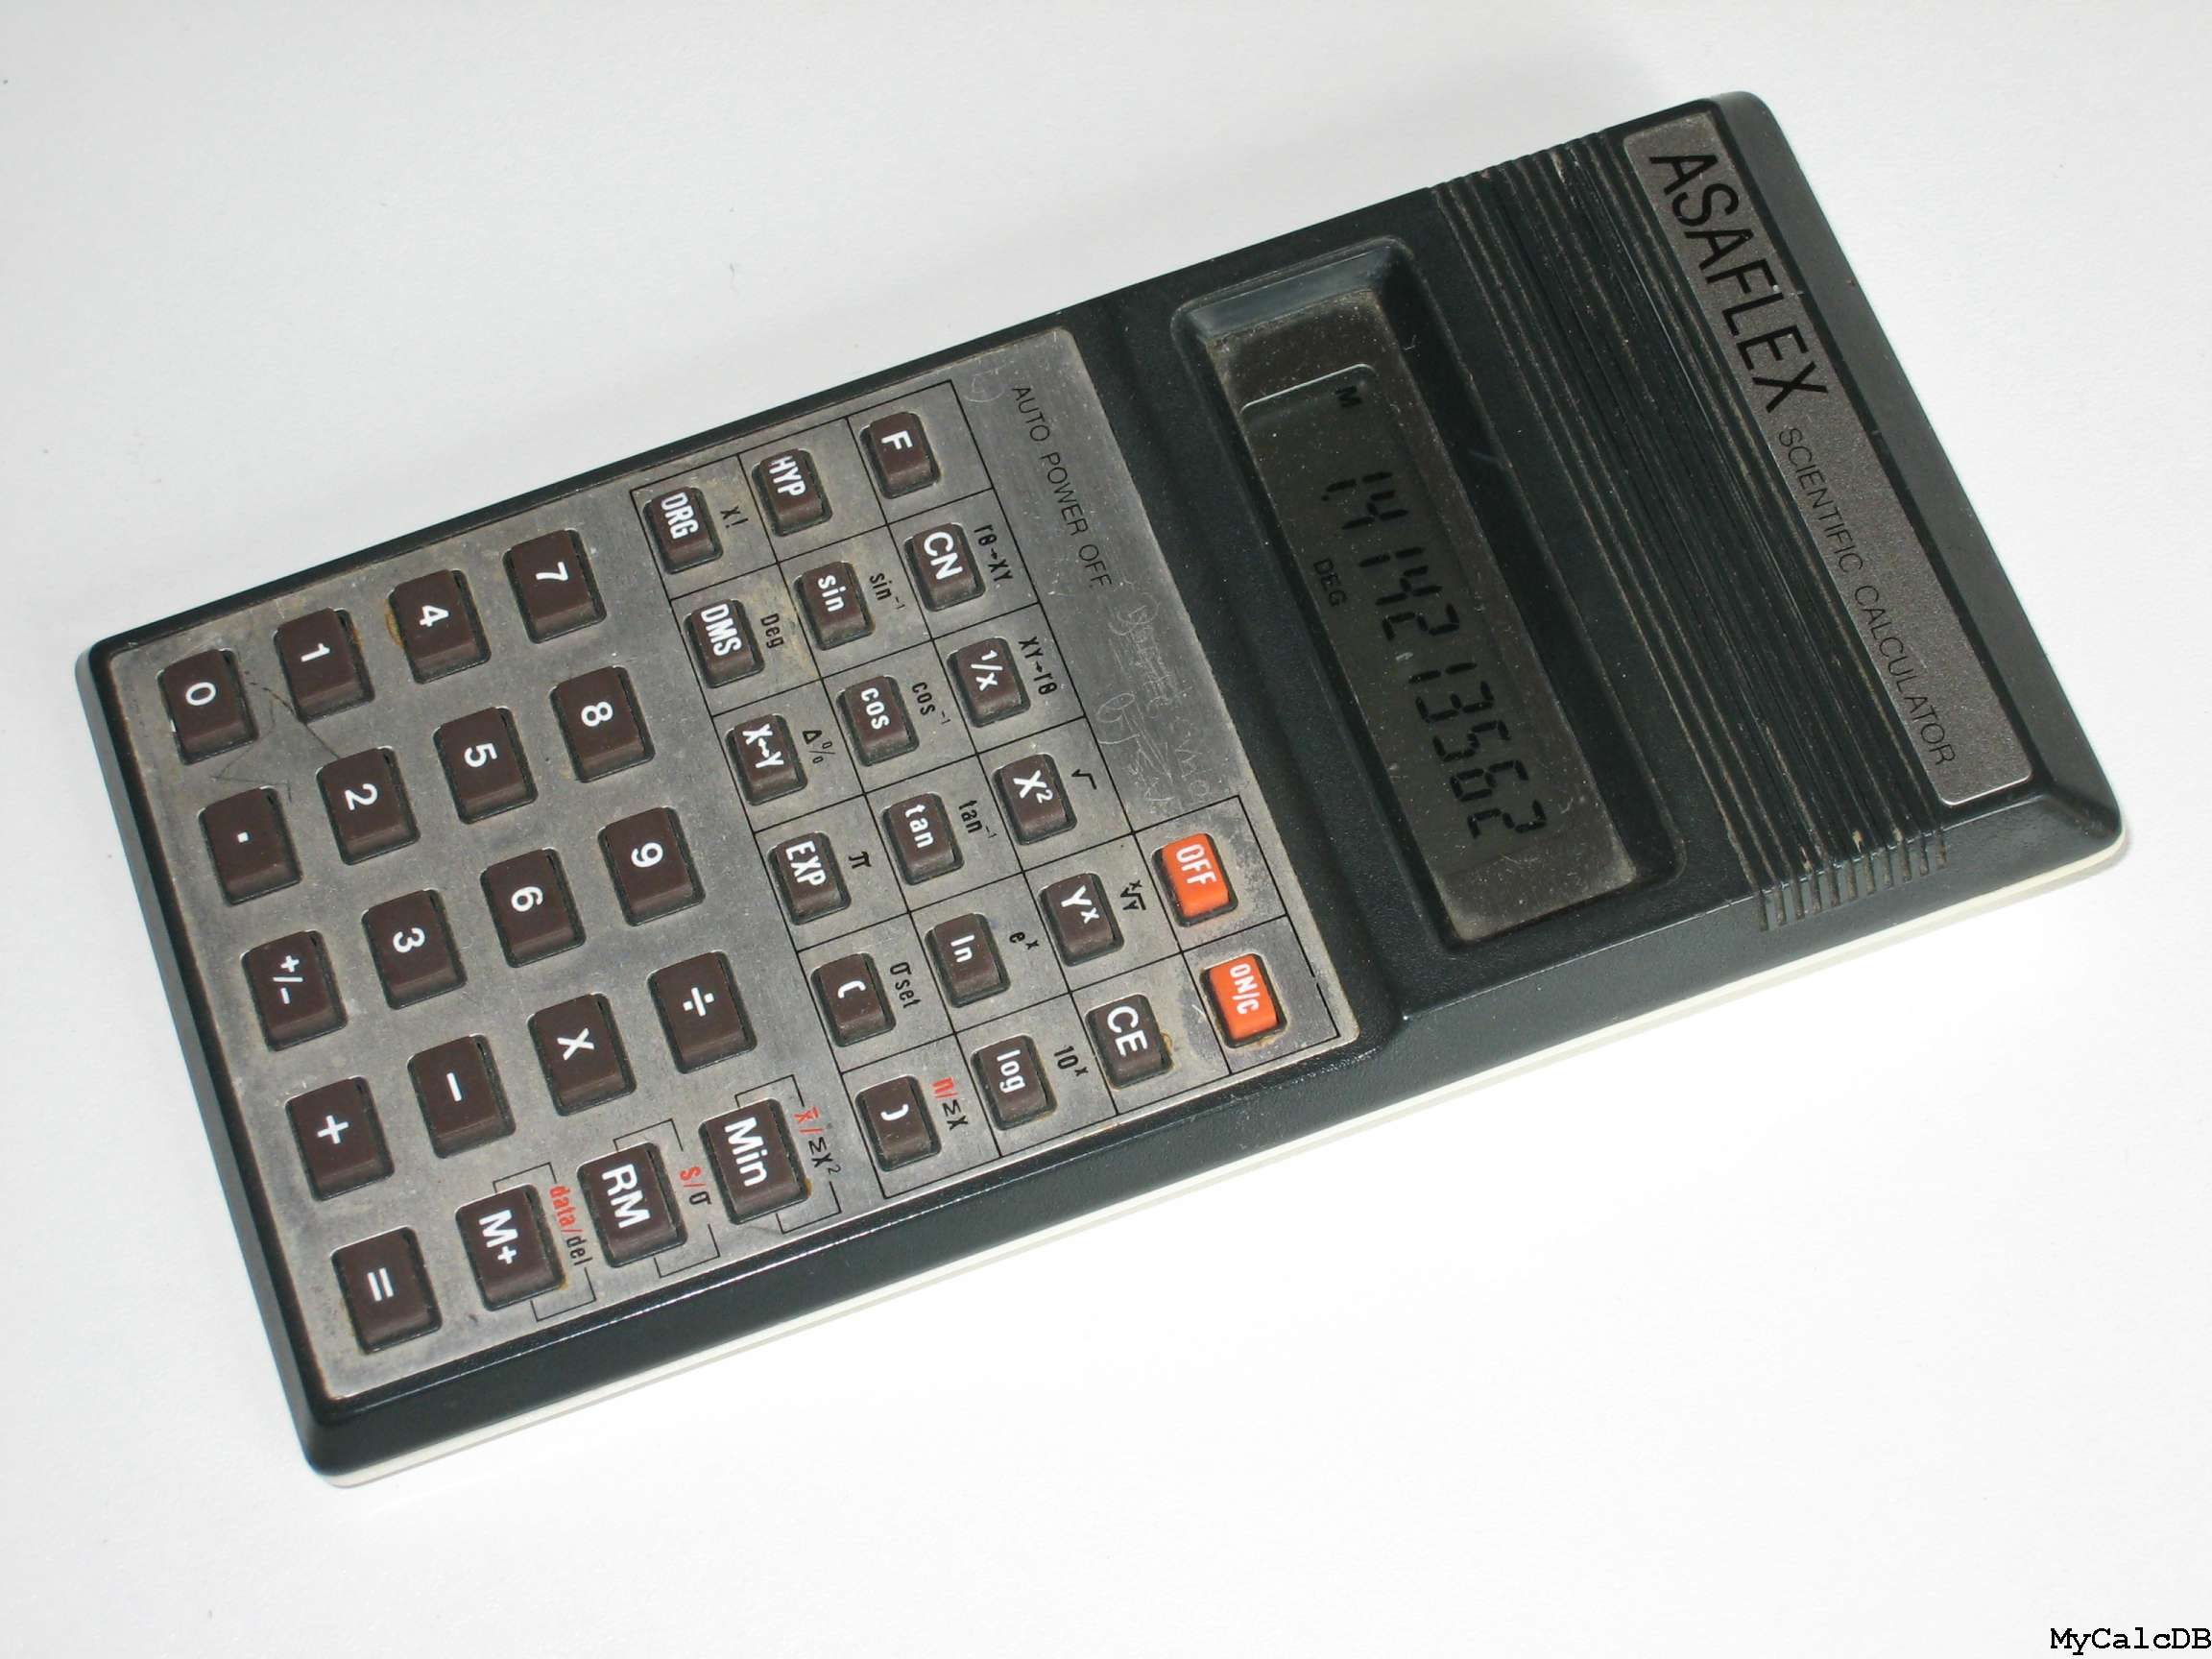 ASAFLEX SCIENTIFIC CALCULATOR